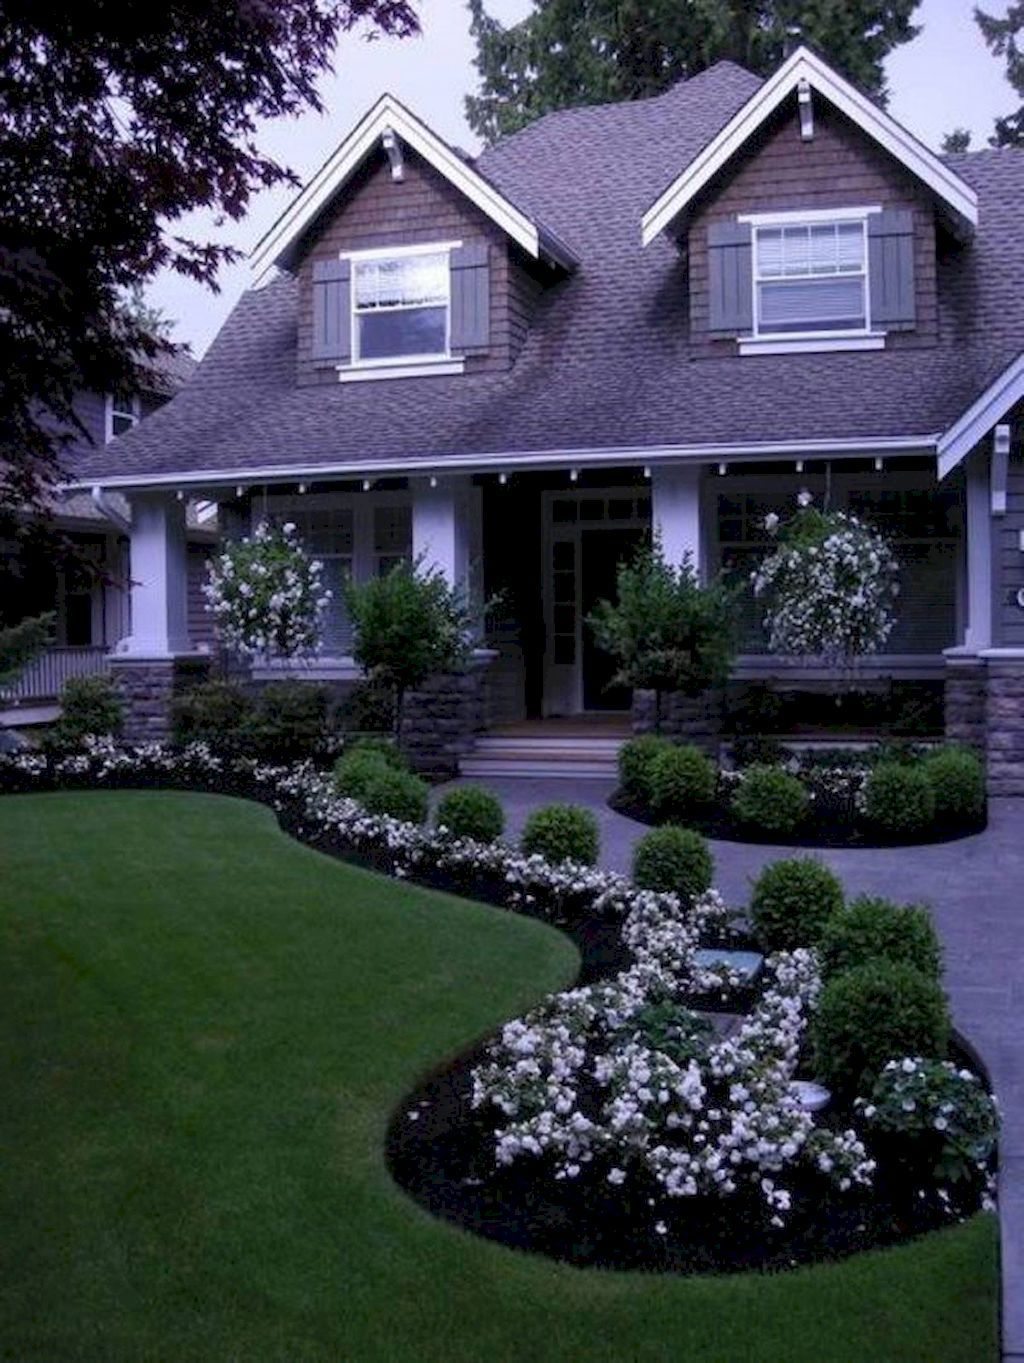 40 beautiful front yard landscaping ideas yard for House landscape design